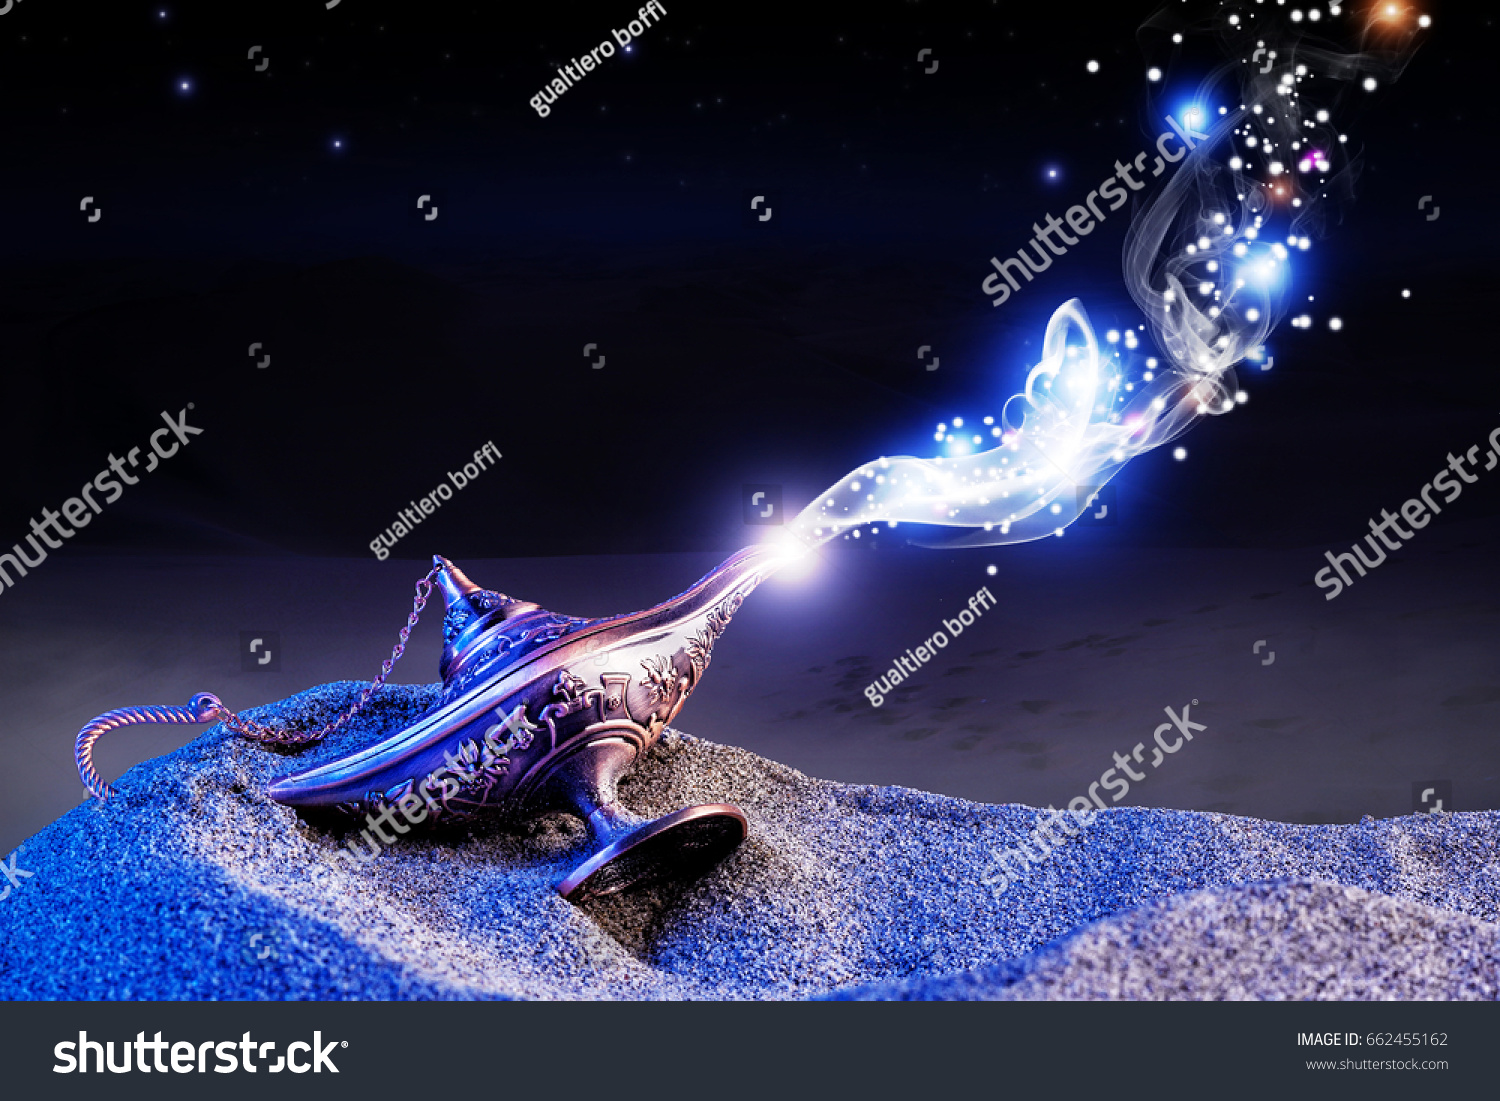 Aladdin Genie Magic Lamp On Desert Stock Photo (Royalty Free ... for Aladdin Desert Background  45ifm